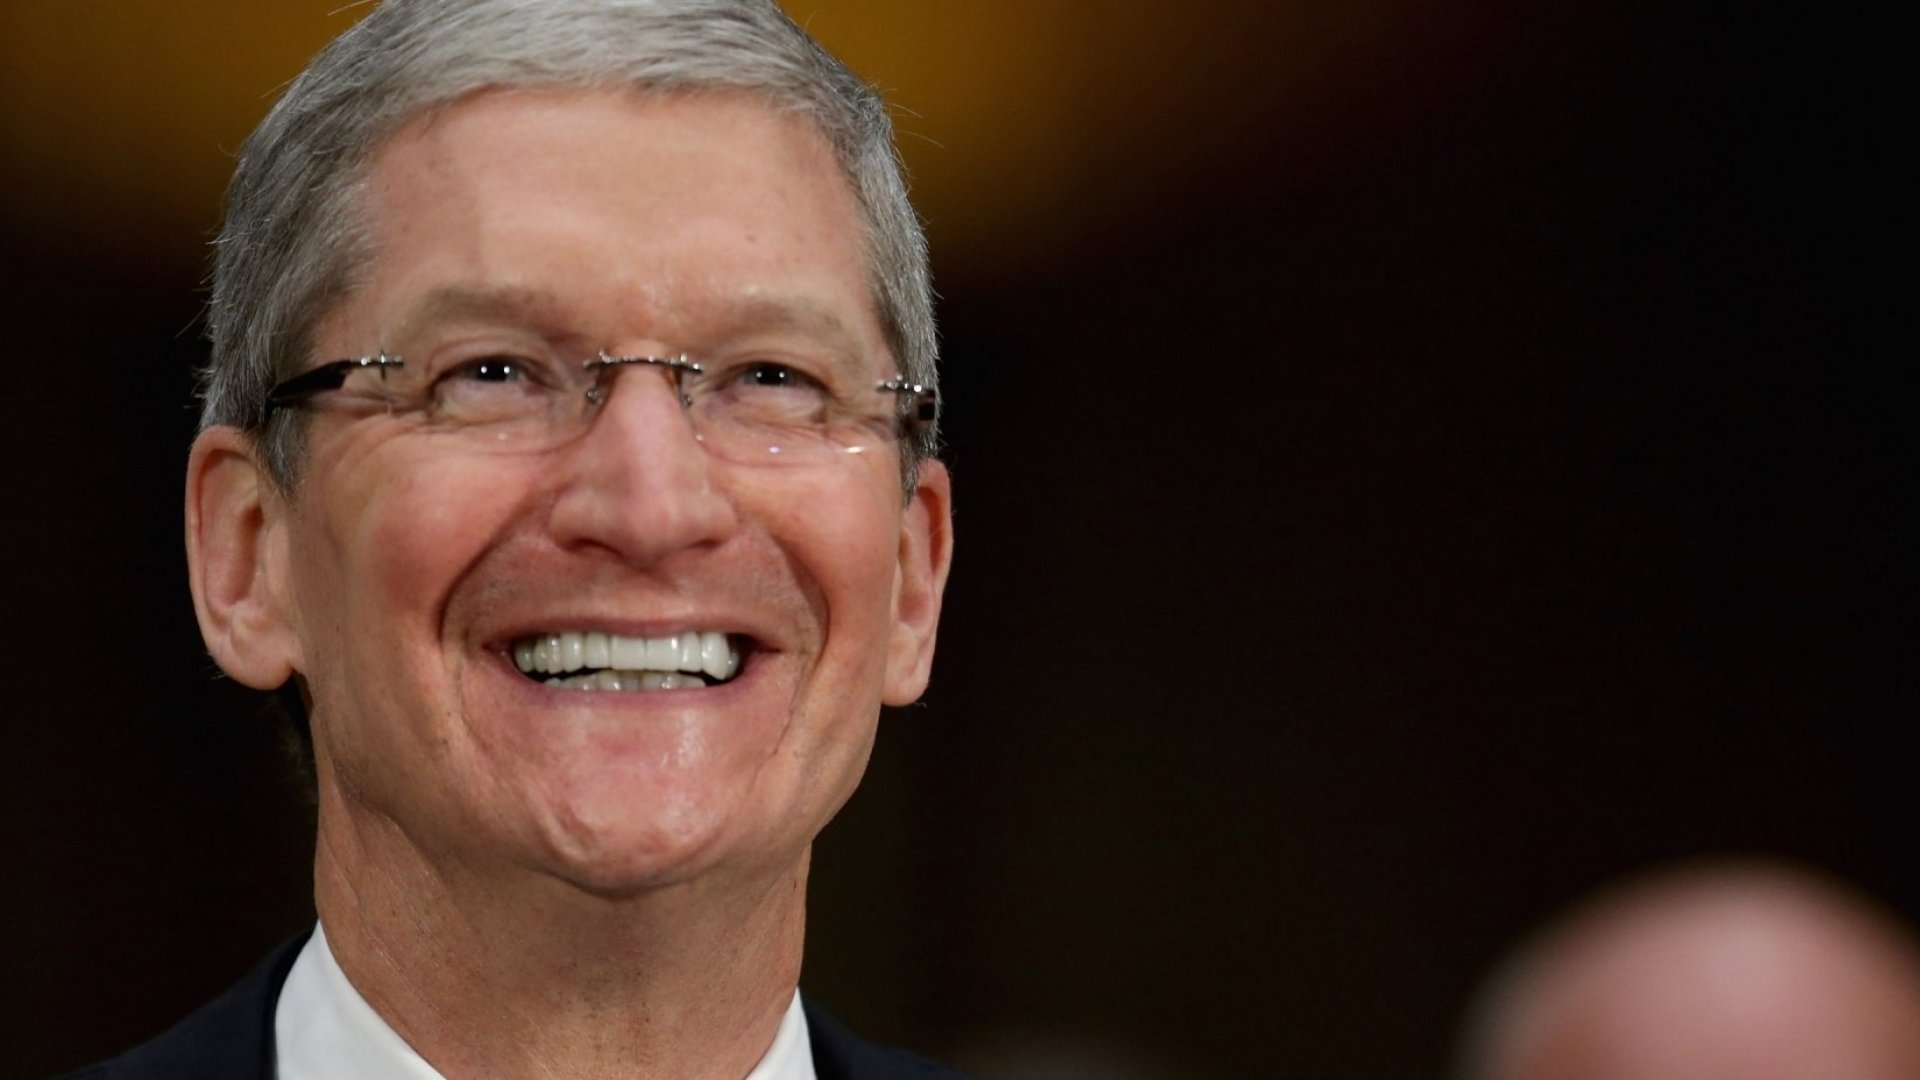 The 13 Best Quotes From Apple's Tim Cook on Innovation and Leadership